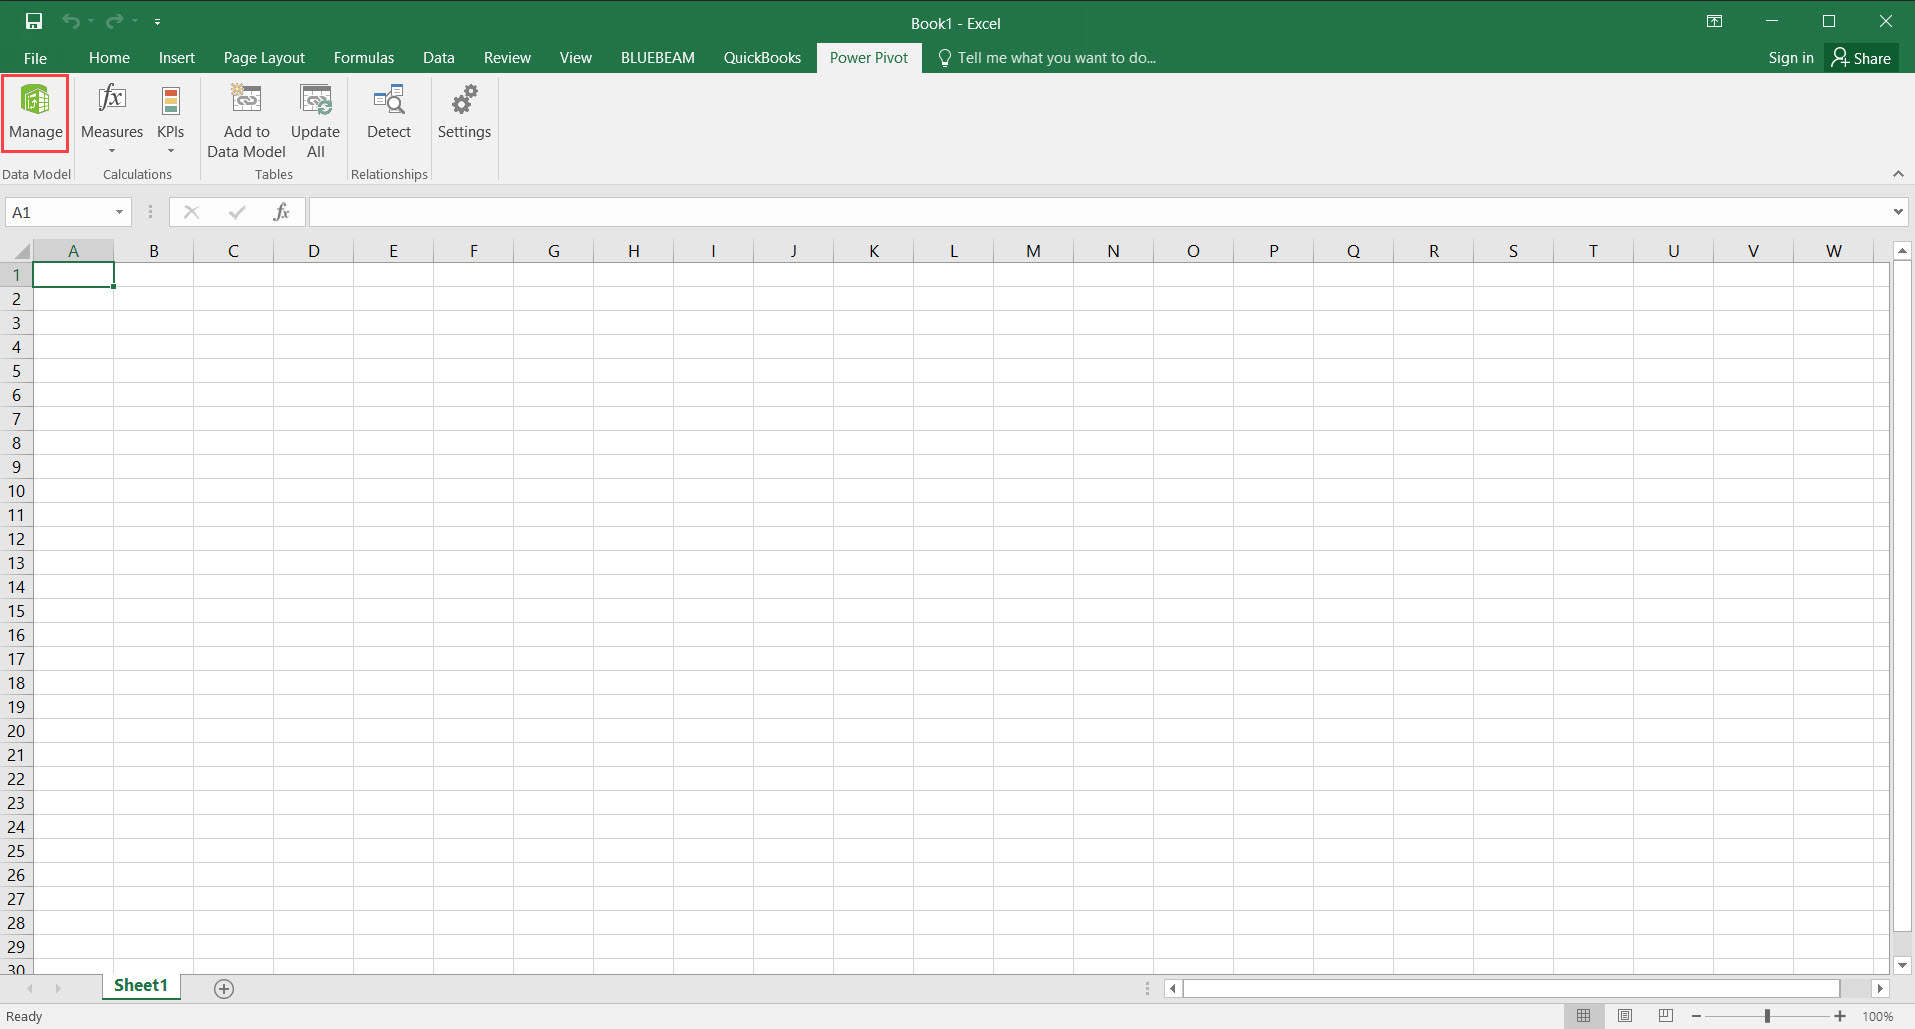 Excel Workbook, Power Pivot tab; shows the location of the Manage button.